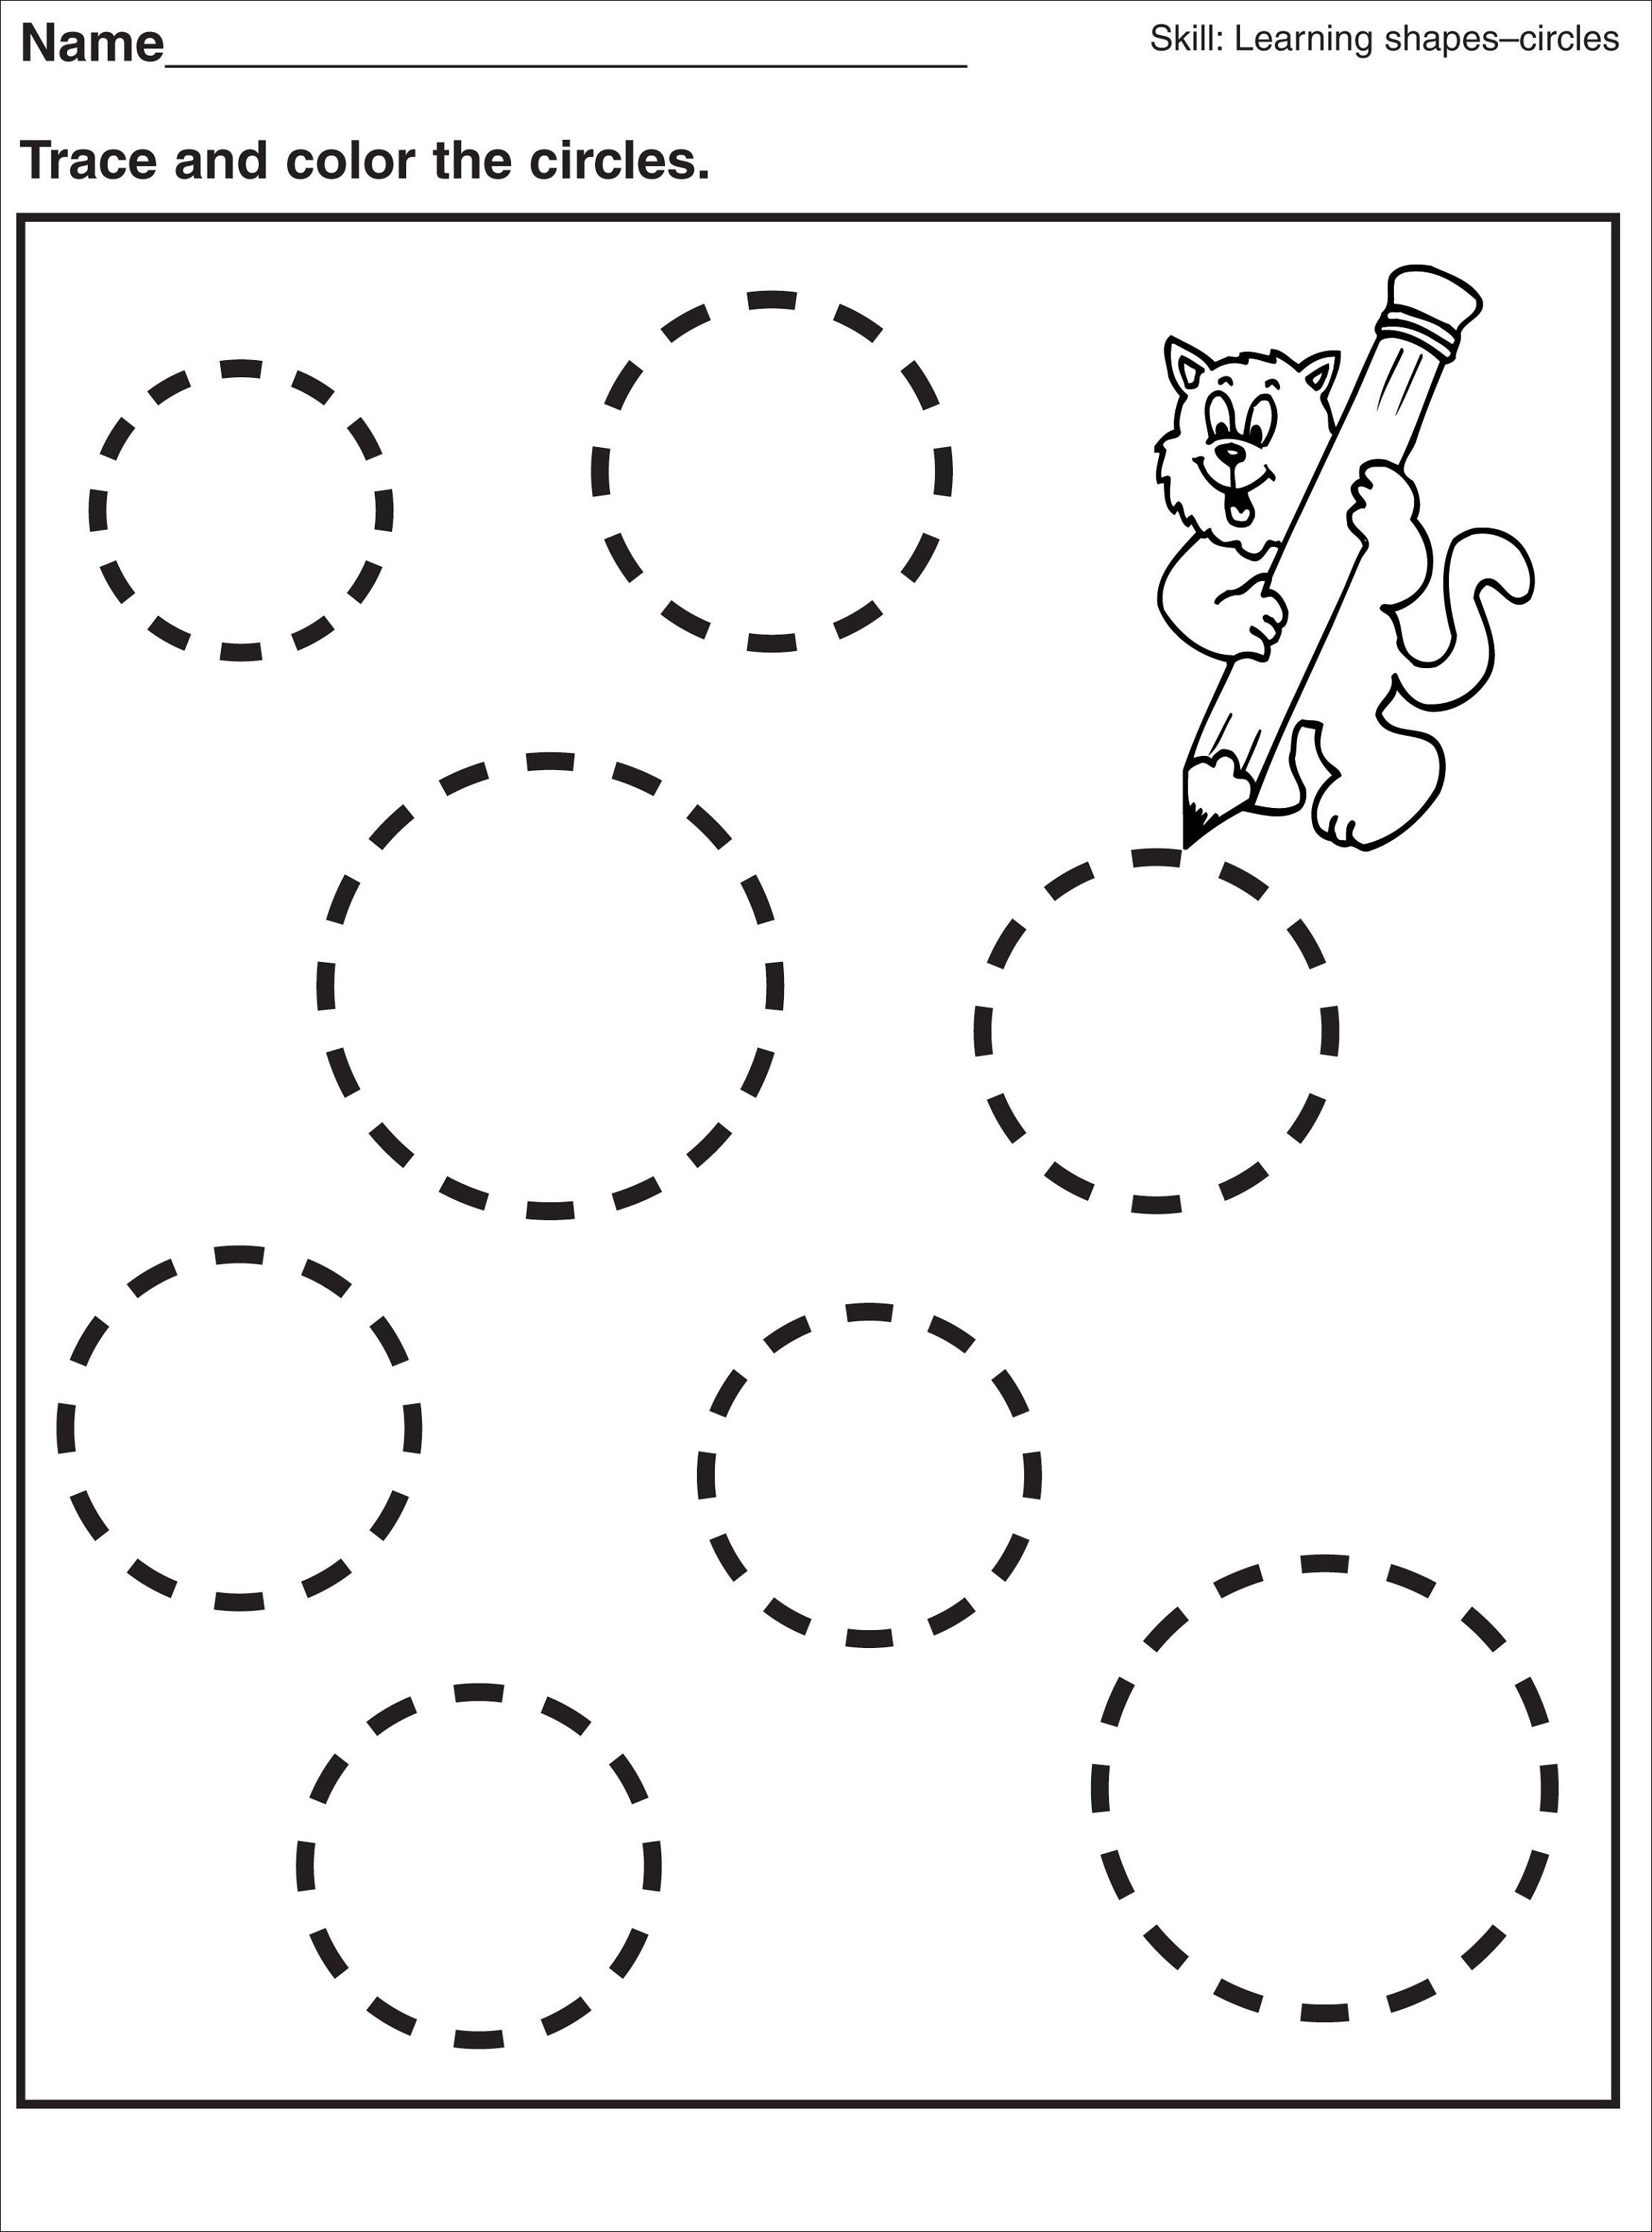 Preschool Tracing Sheets